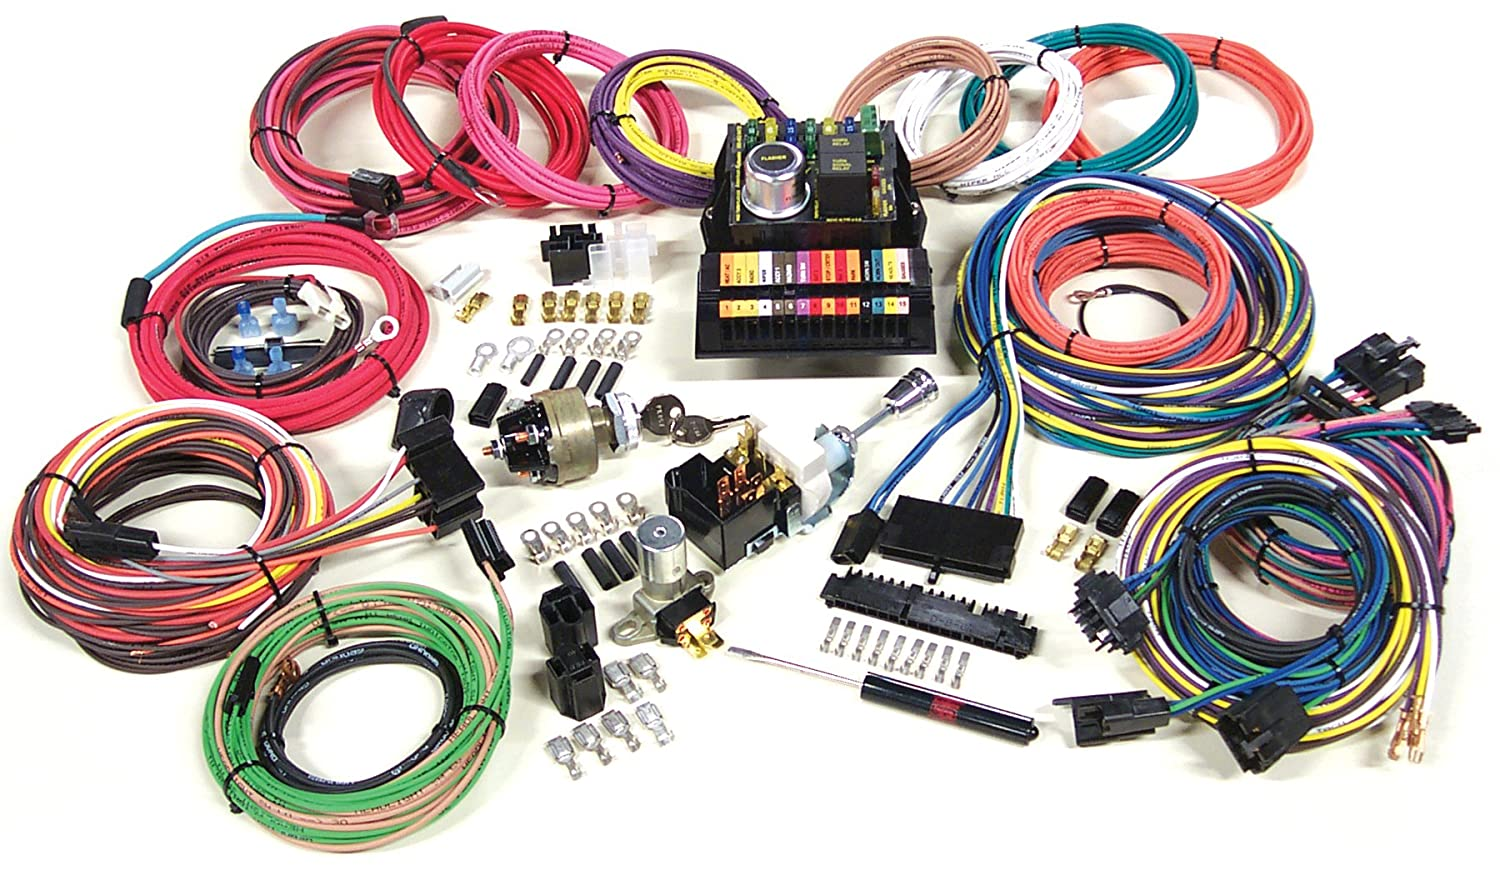 Amazon.com: American Autowire 500703 Highway 15 Modular Wiring Panel:  Automotive